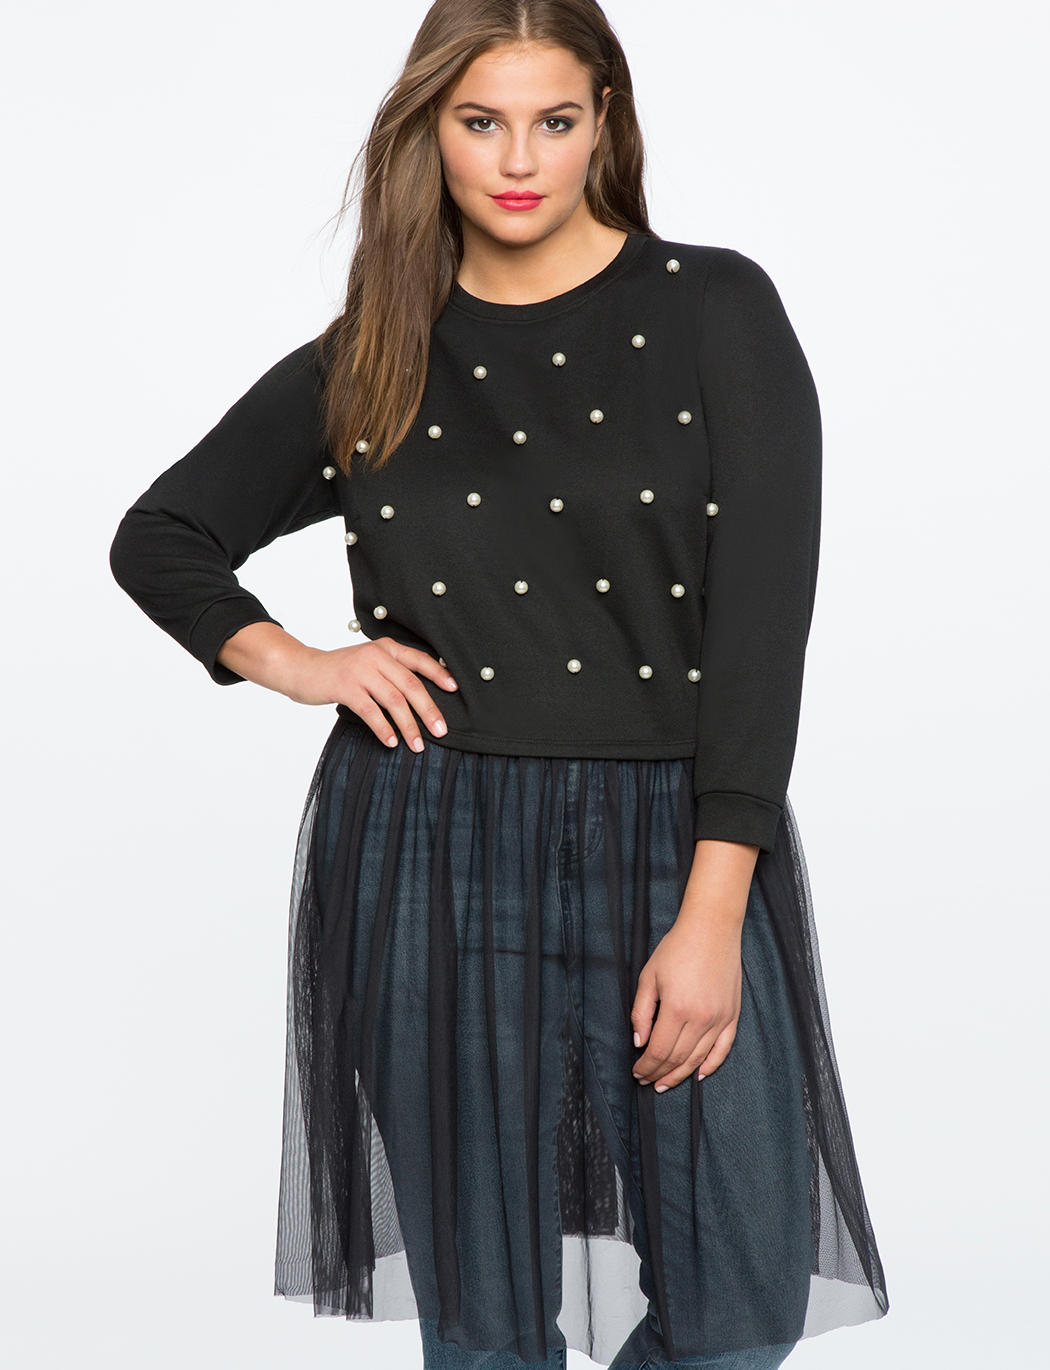 Pearl Embellished Sweatshirt with Tulle